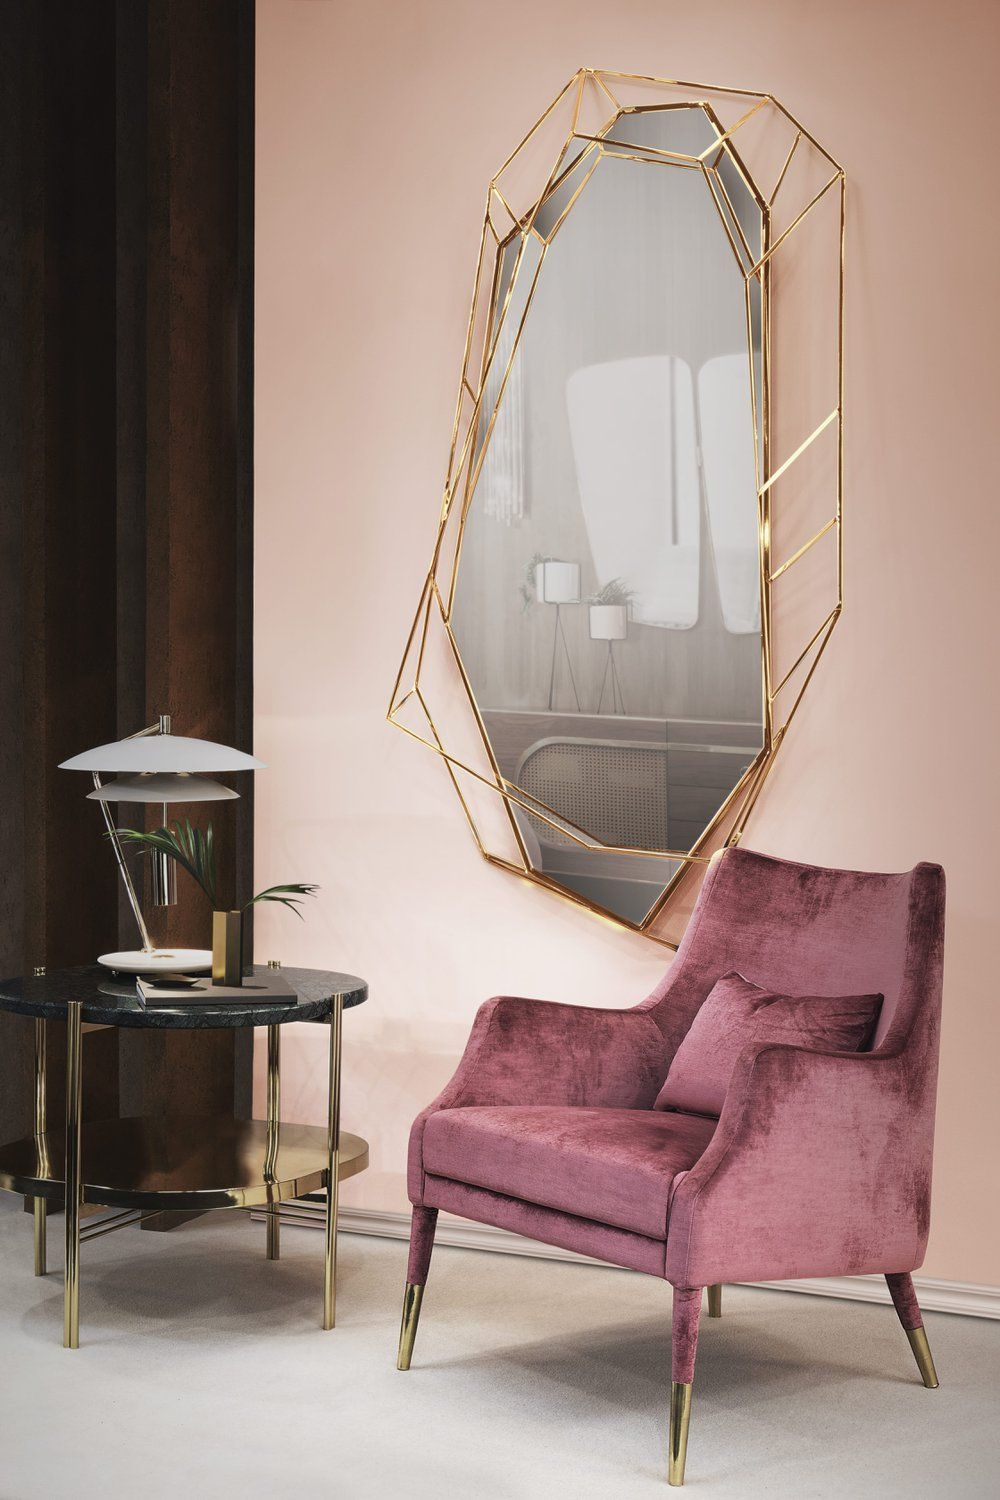 Incredible Home Design Tips to Use Mirrors! home design Home Design Tips To Use Mirrors The Right Way! deisgn tips 4